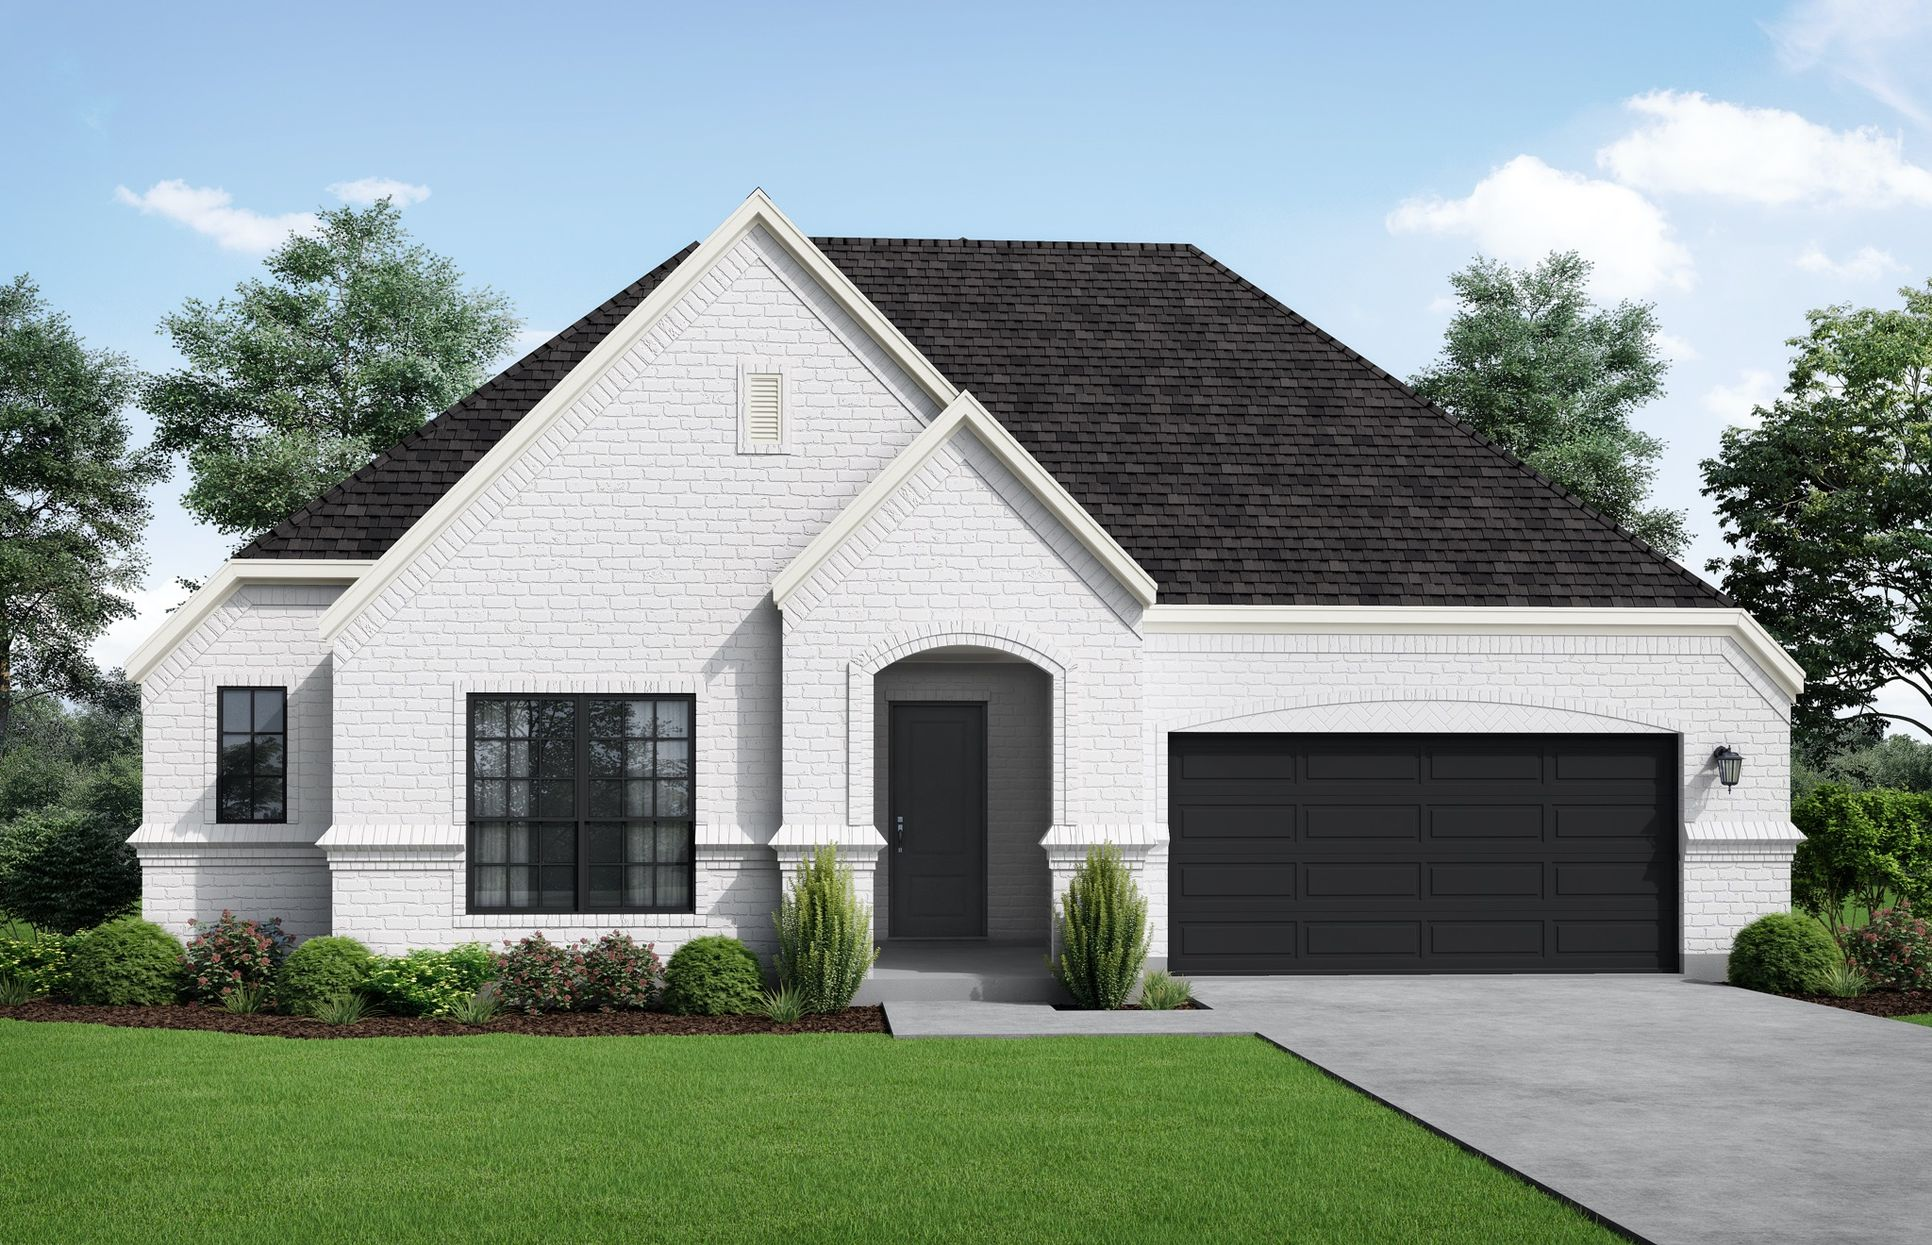 Granada Elevation C. Images are artist renderings and will differ from the actual home built.:Granada Elevation C